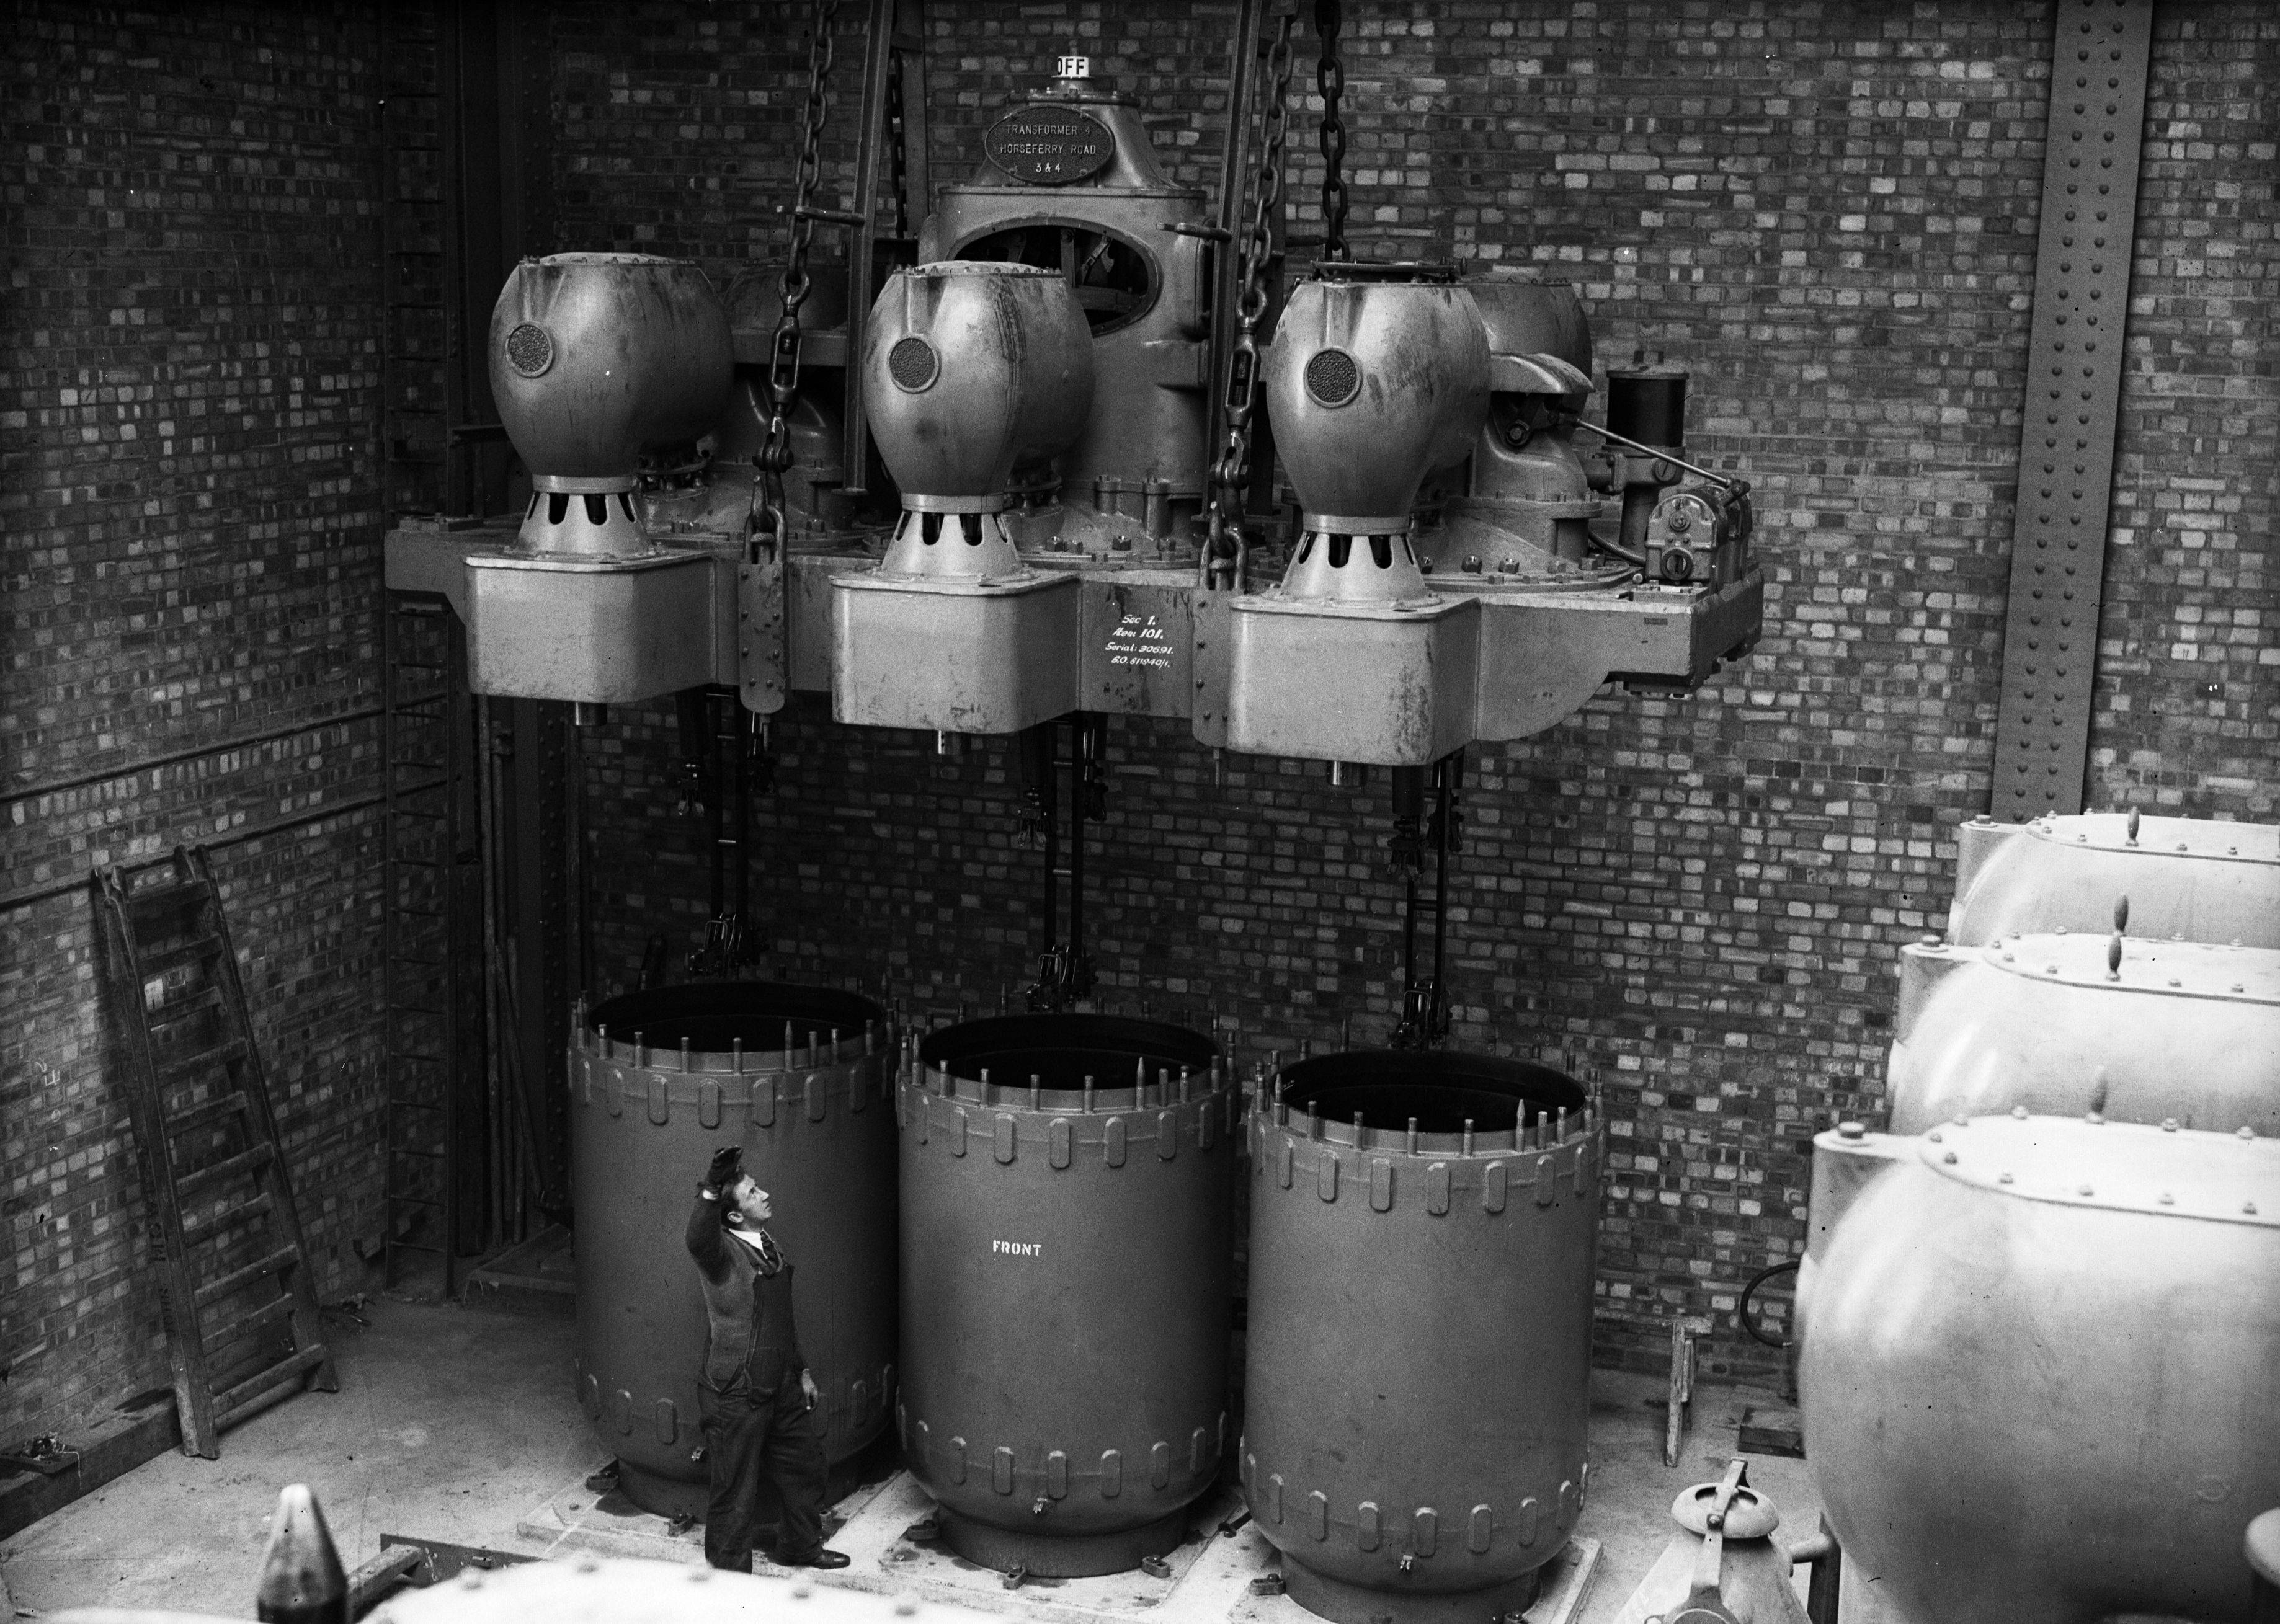 28th April 1932: A 15,500 volt circuit breaker at Battersea Power station, London being